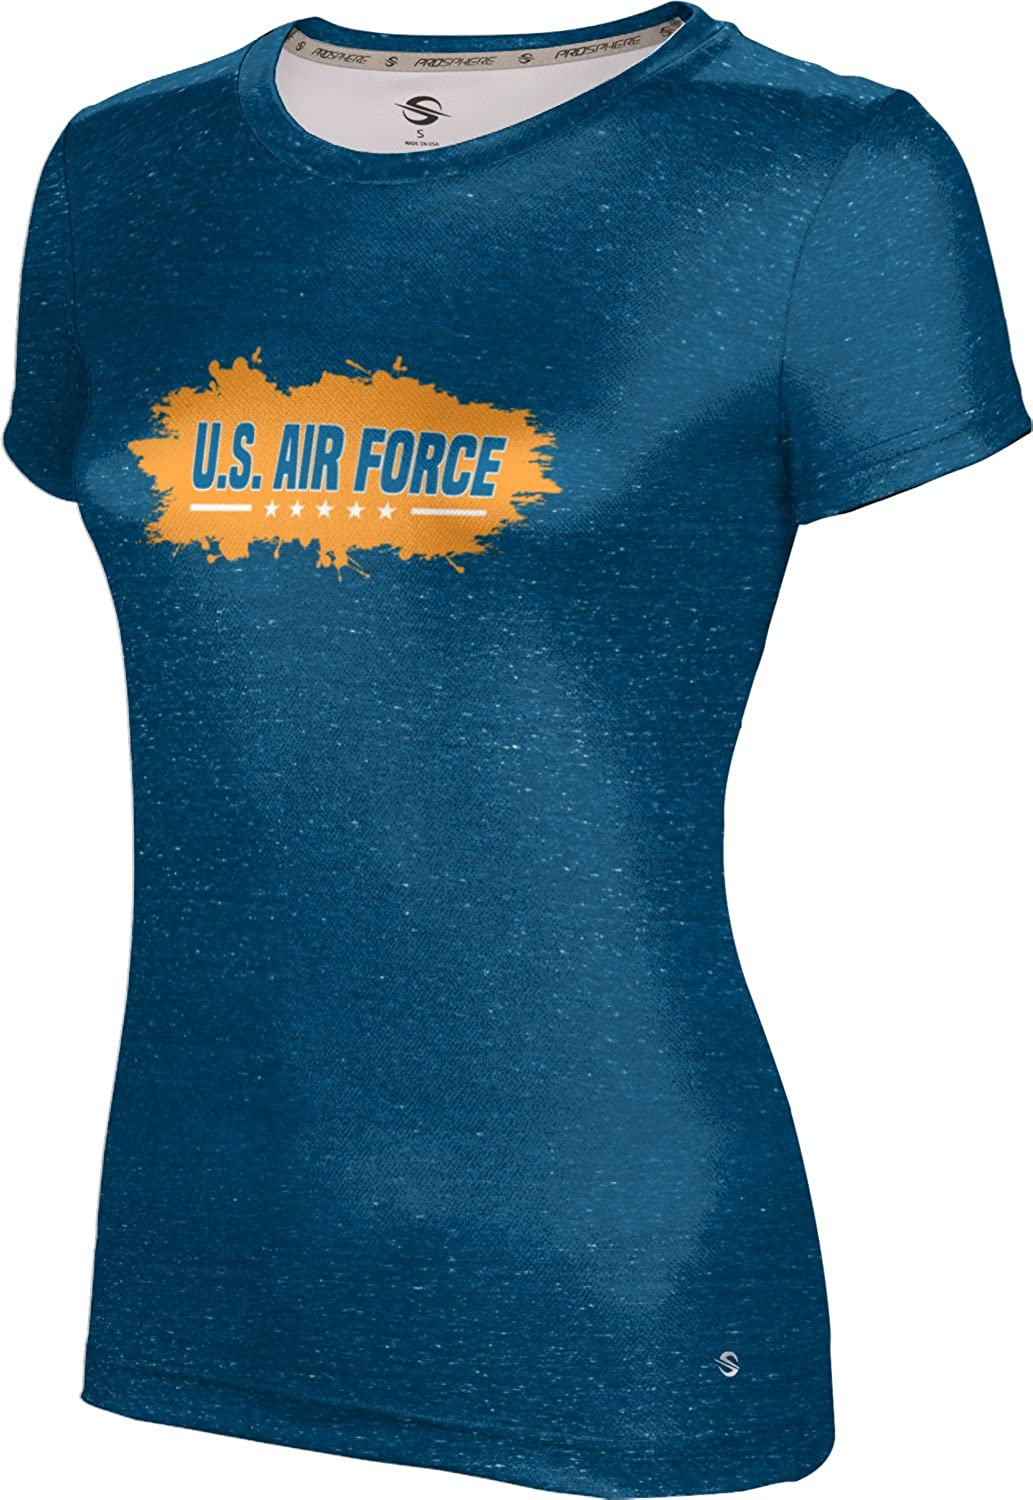 ProSphere Women's U.S. Air Force Military Heather Tech Tee